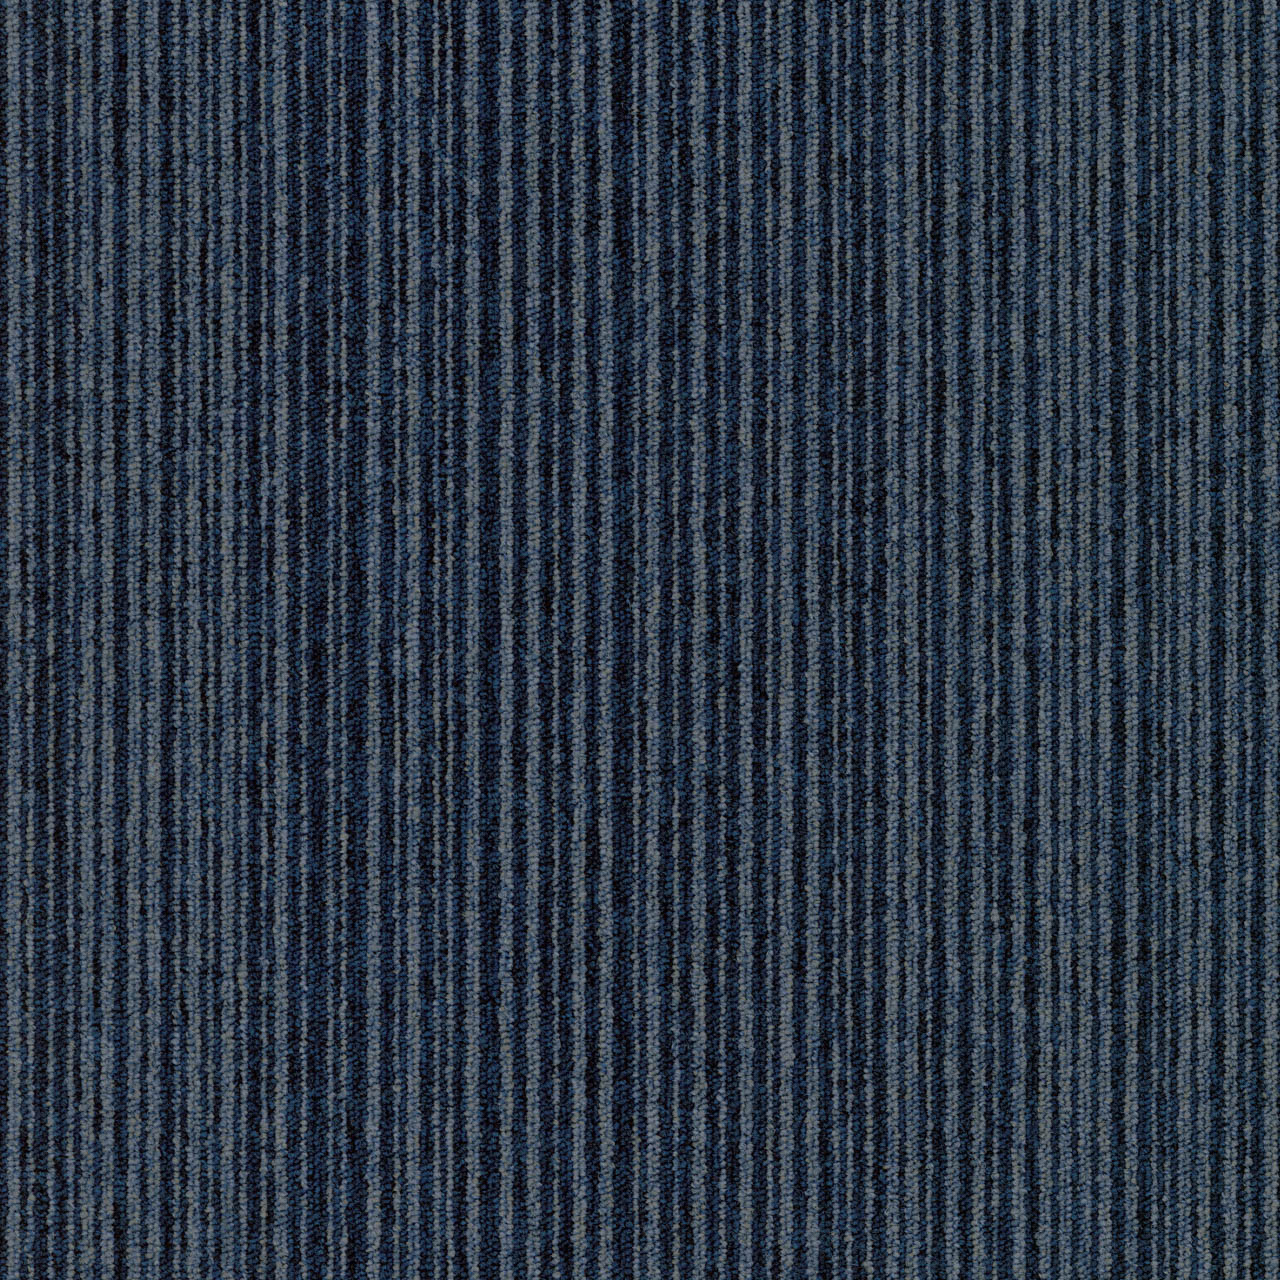 Amtico International: Foundry Midnight and Cornflower Stripe